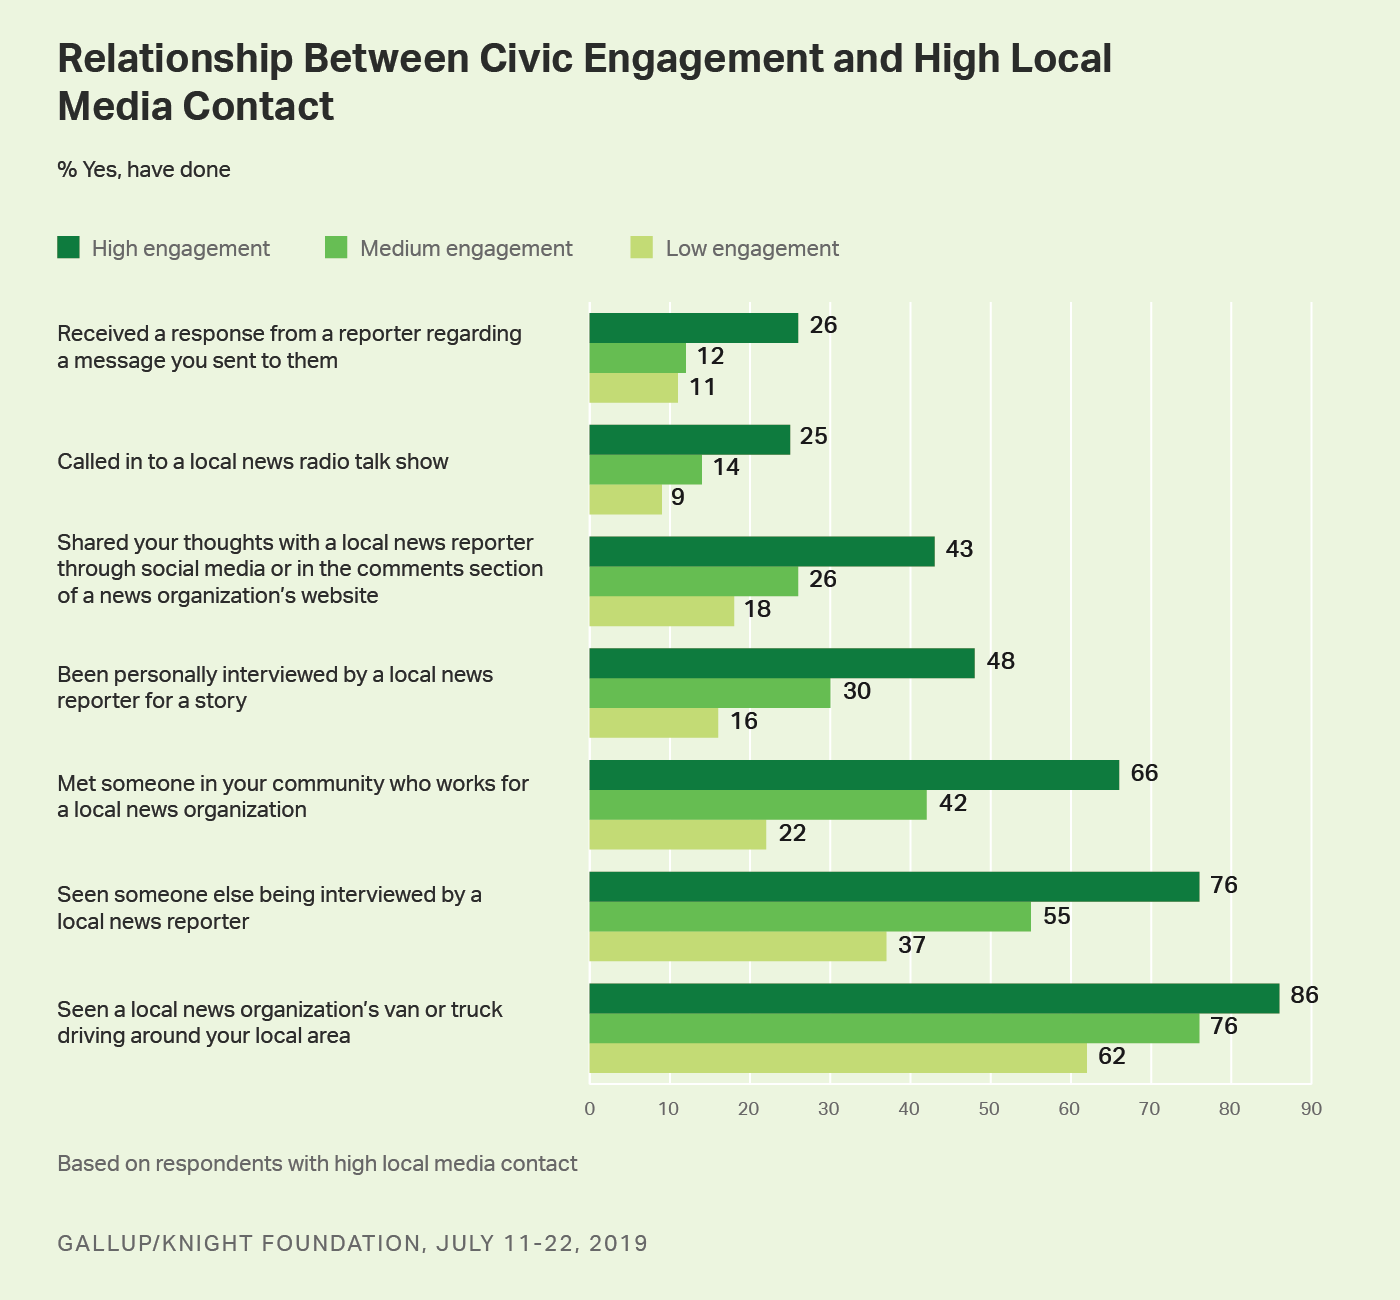 Bar graph. The relationship between Americans' civic engagement and high local media contact.